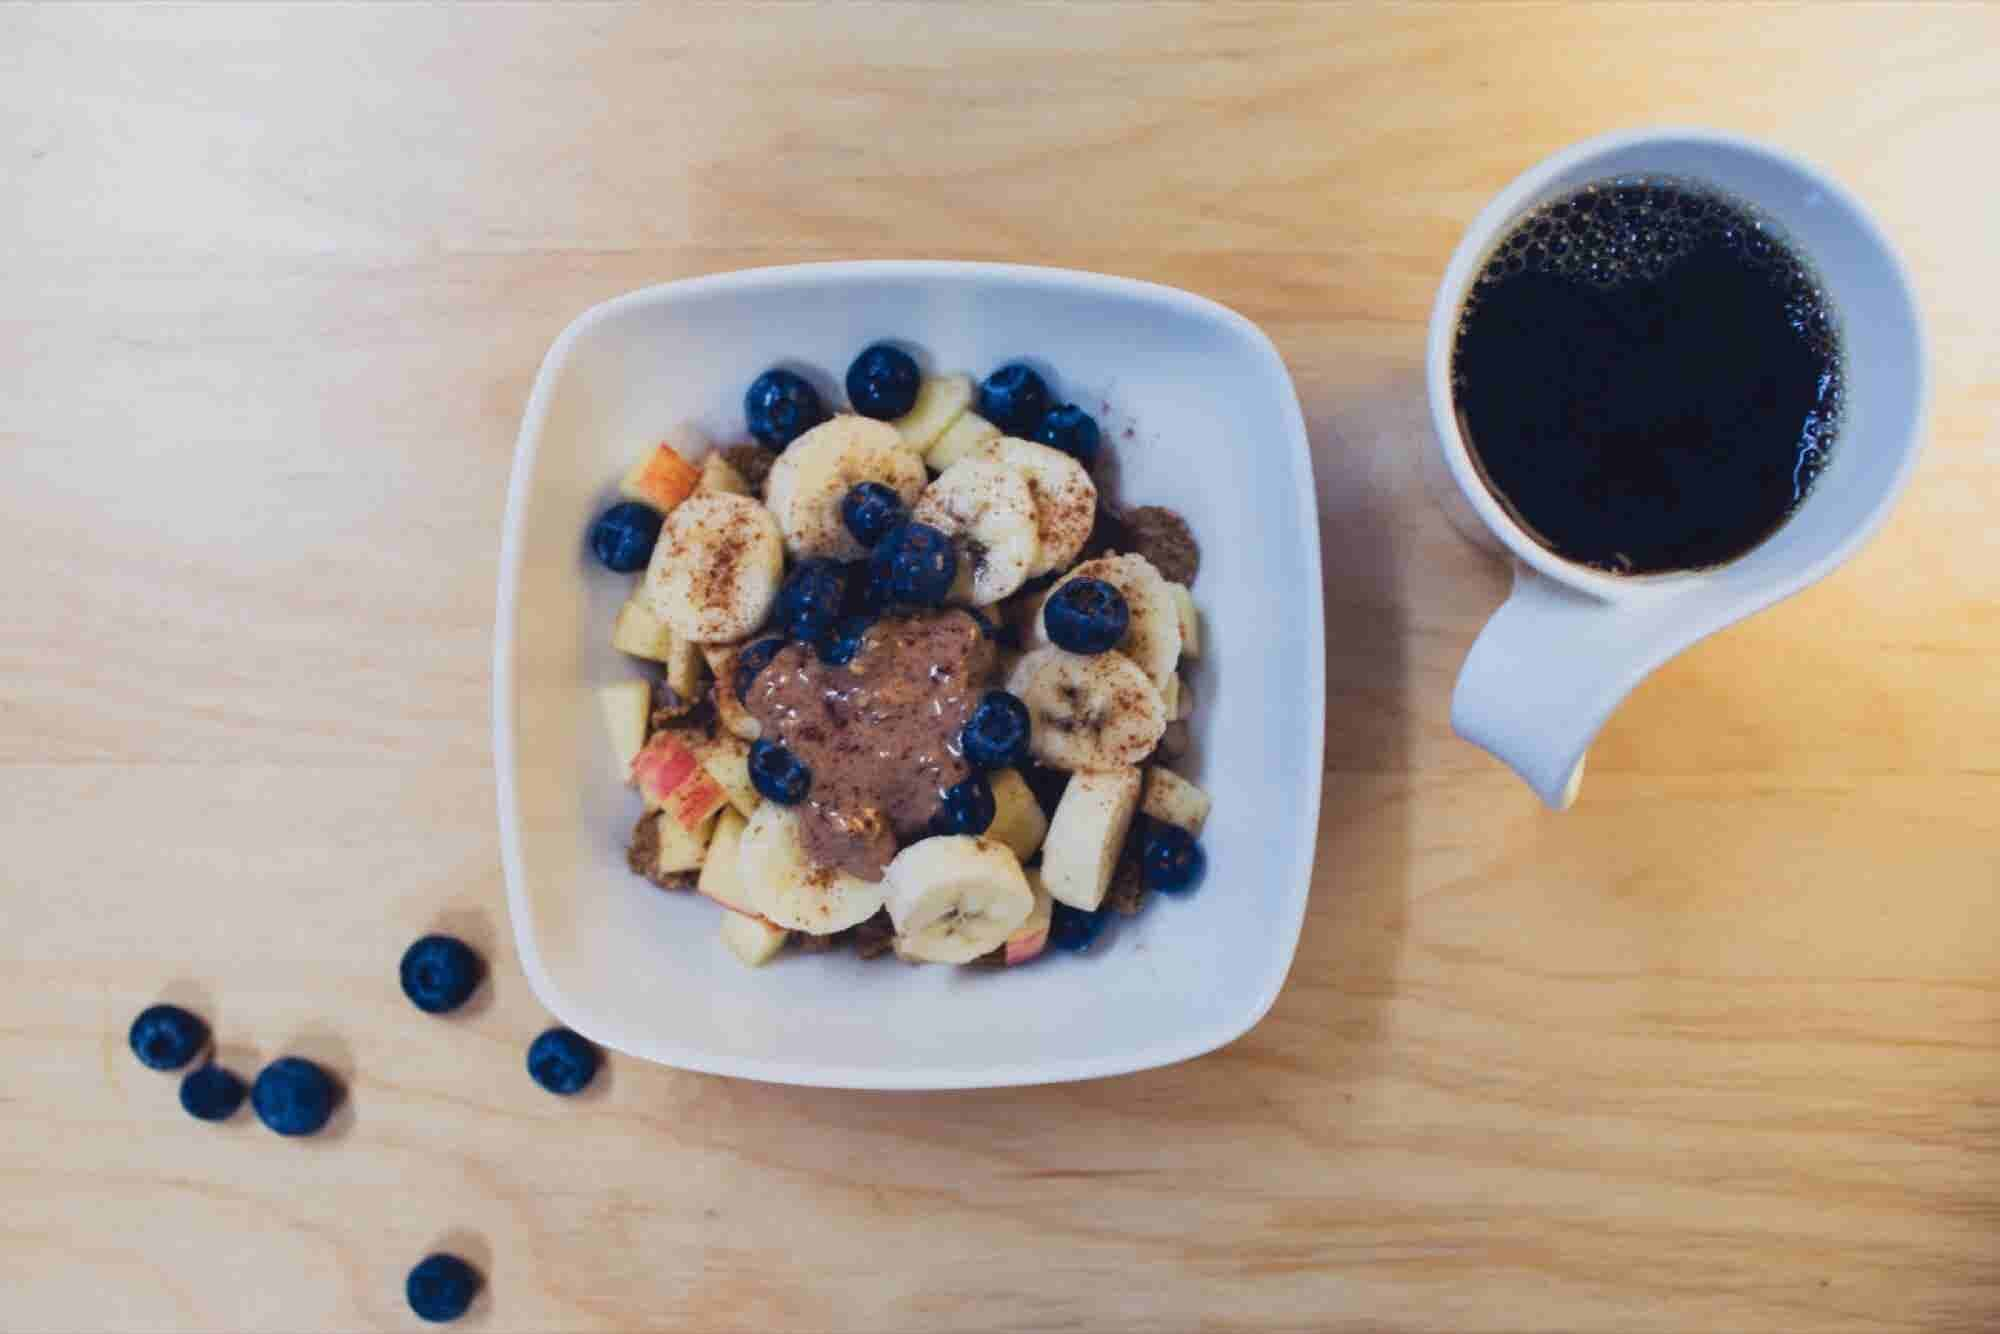 How to Maintain a Healthy Lifestyle While Chowing Down at Lunch Meetings